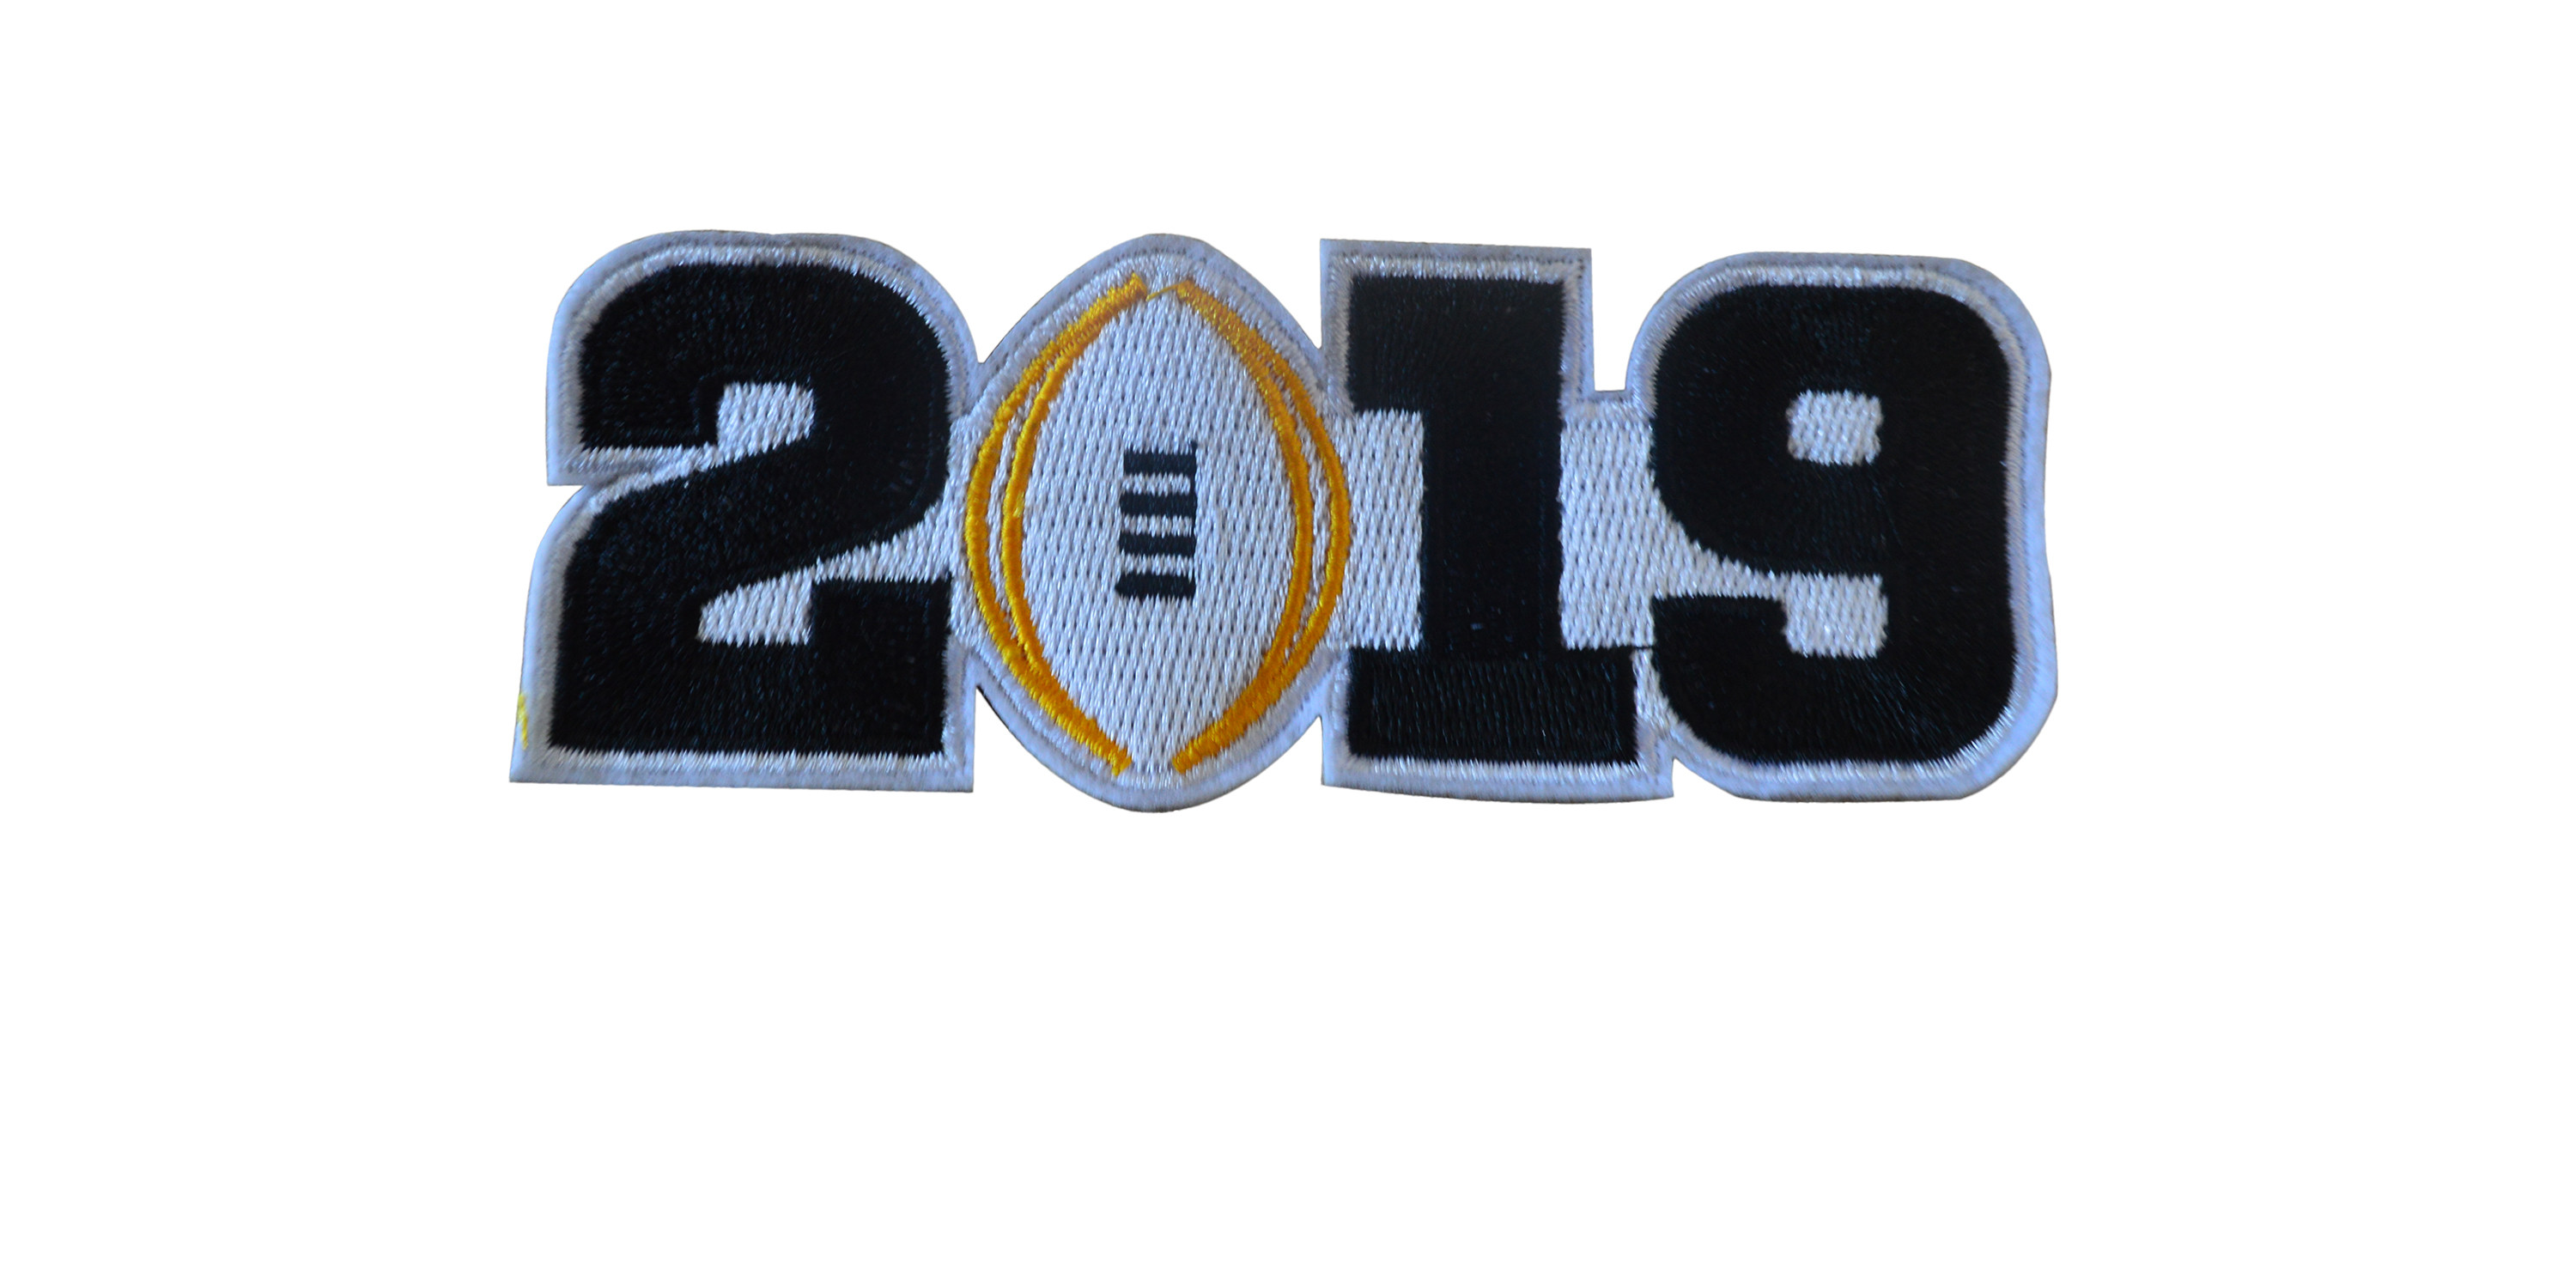 2019 College Football Playoff National Championship Patch Black(Worn By Clemson)